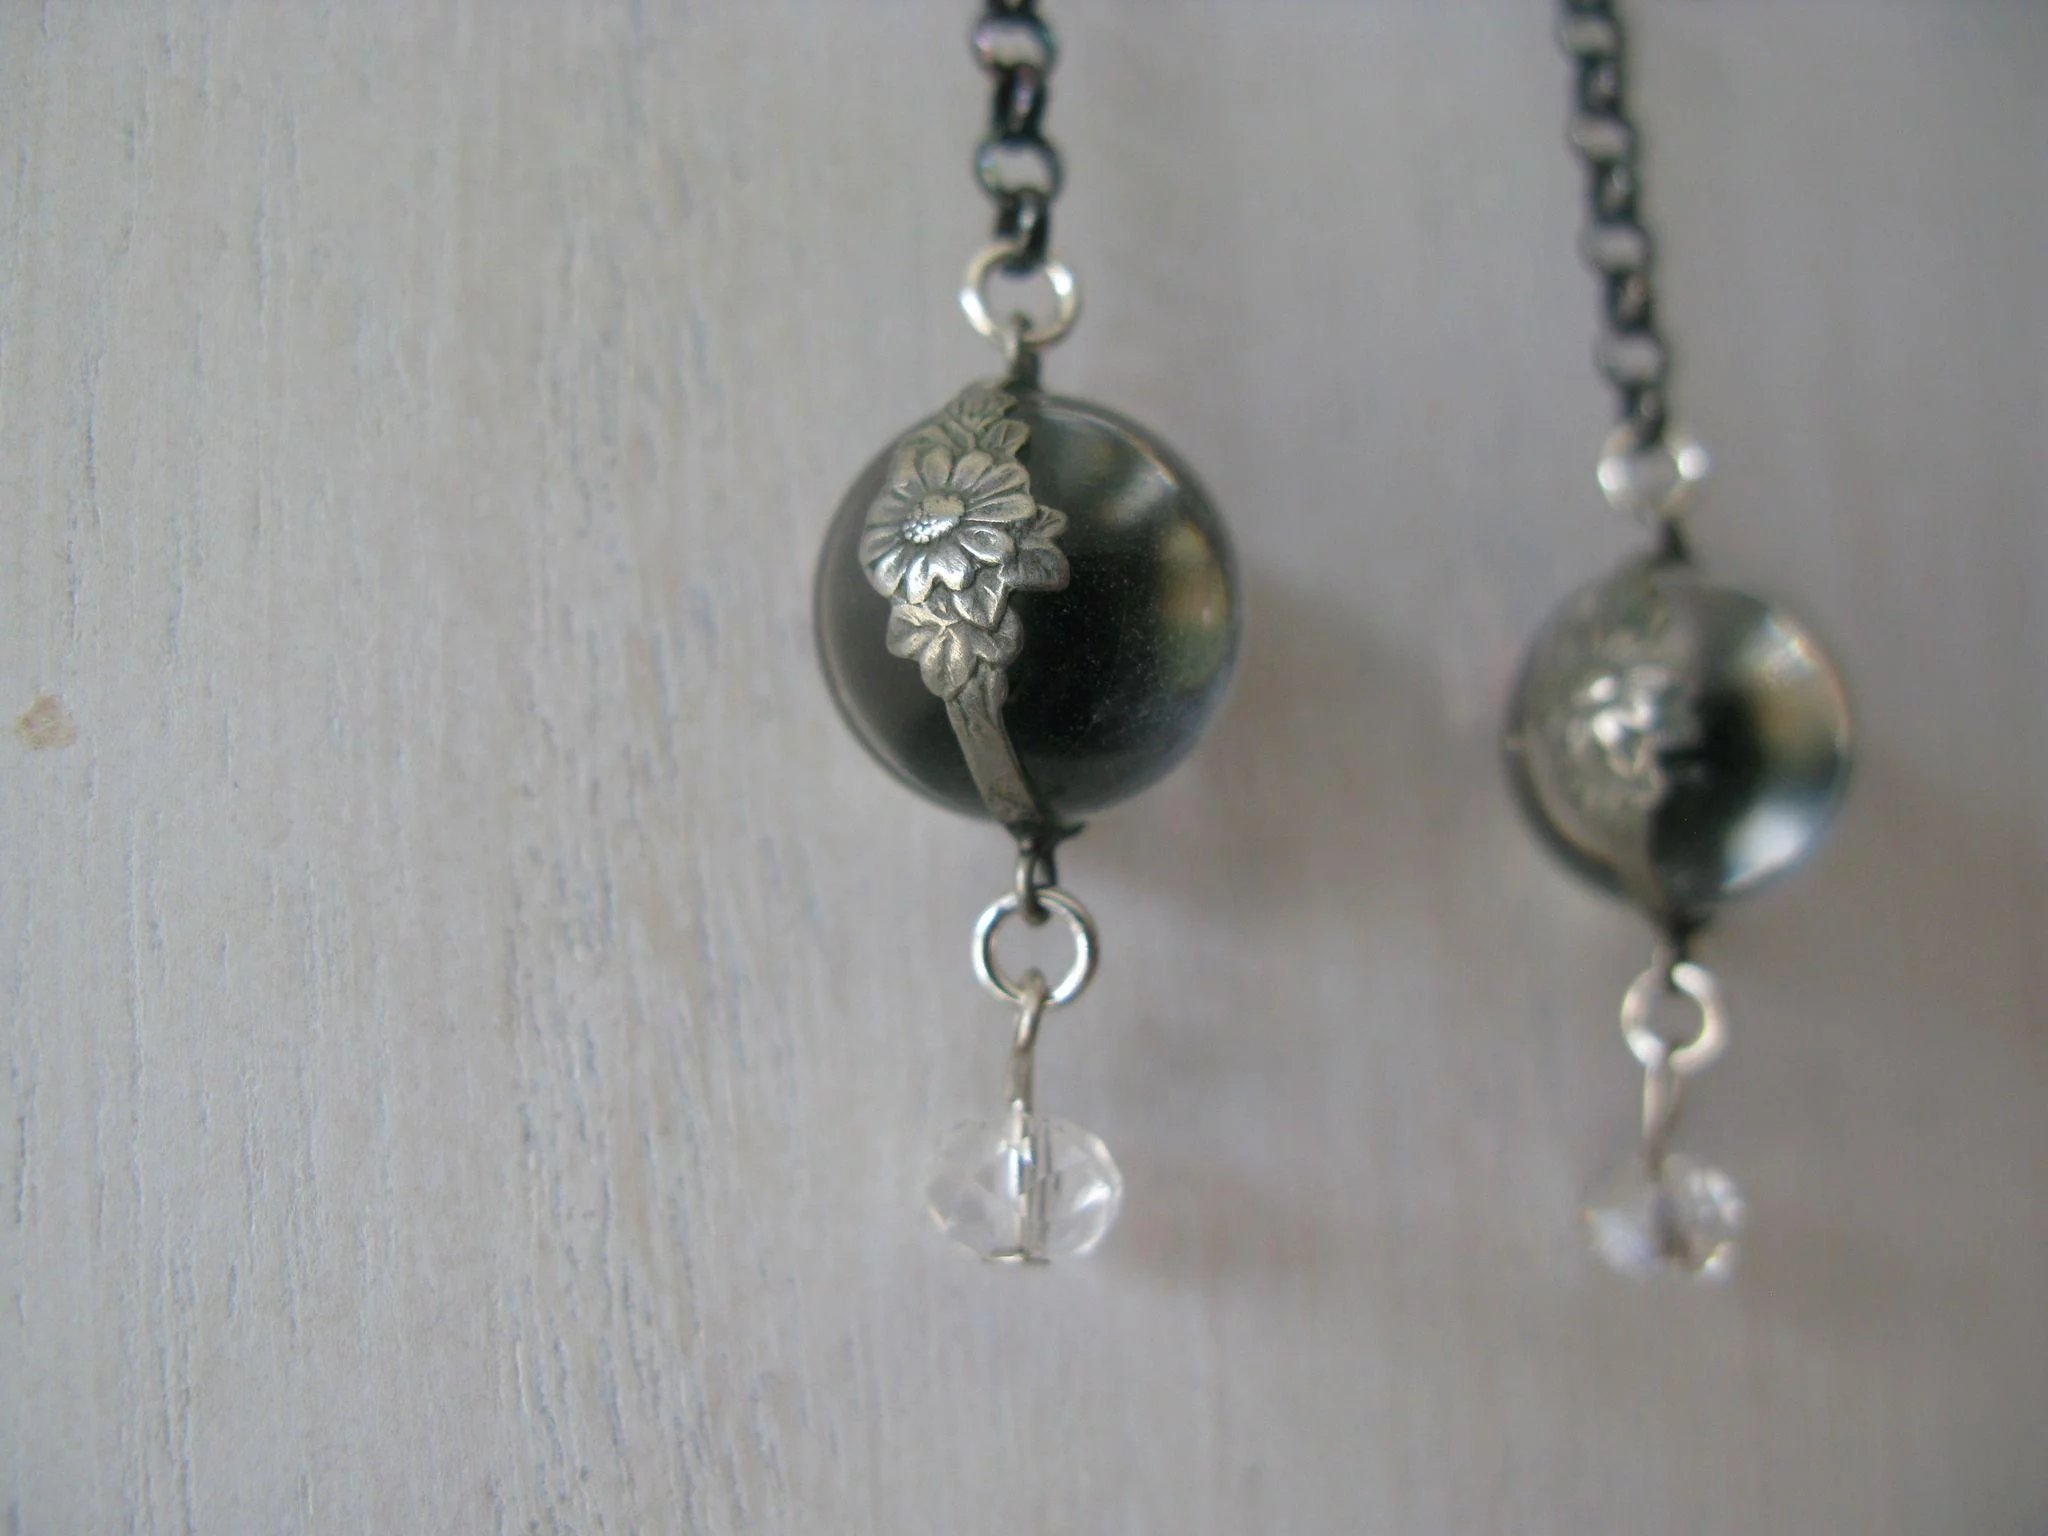 dandelion raiq charm crystal clover clear cylinder il necklace silver fullxfull and wish with fluff pendant long listing